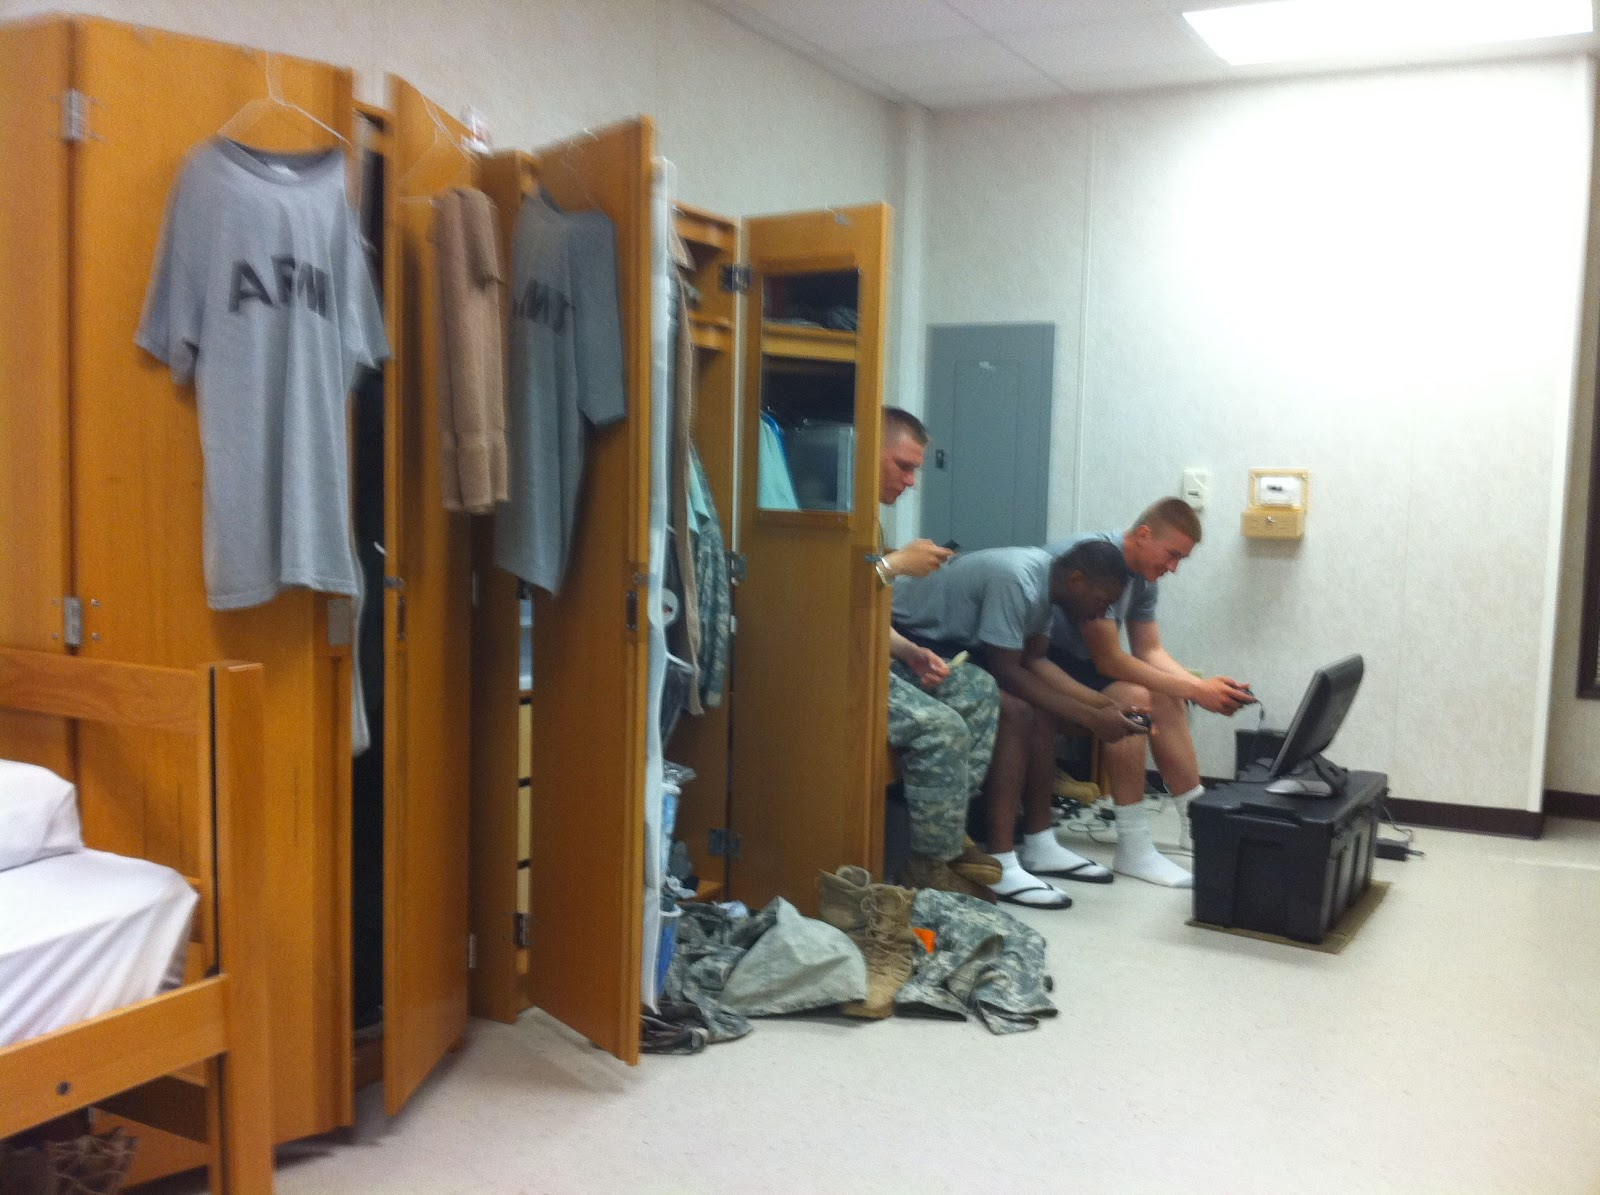 My Army Experience: Test Day (AIT - Fort Gordon) Day 50